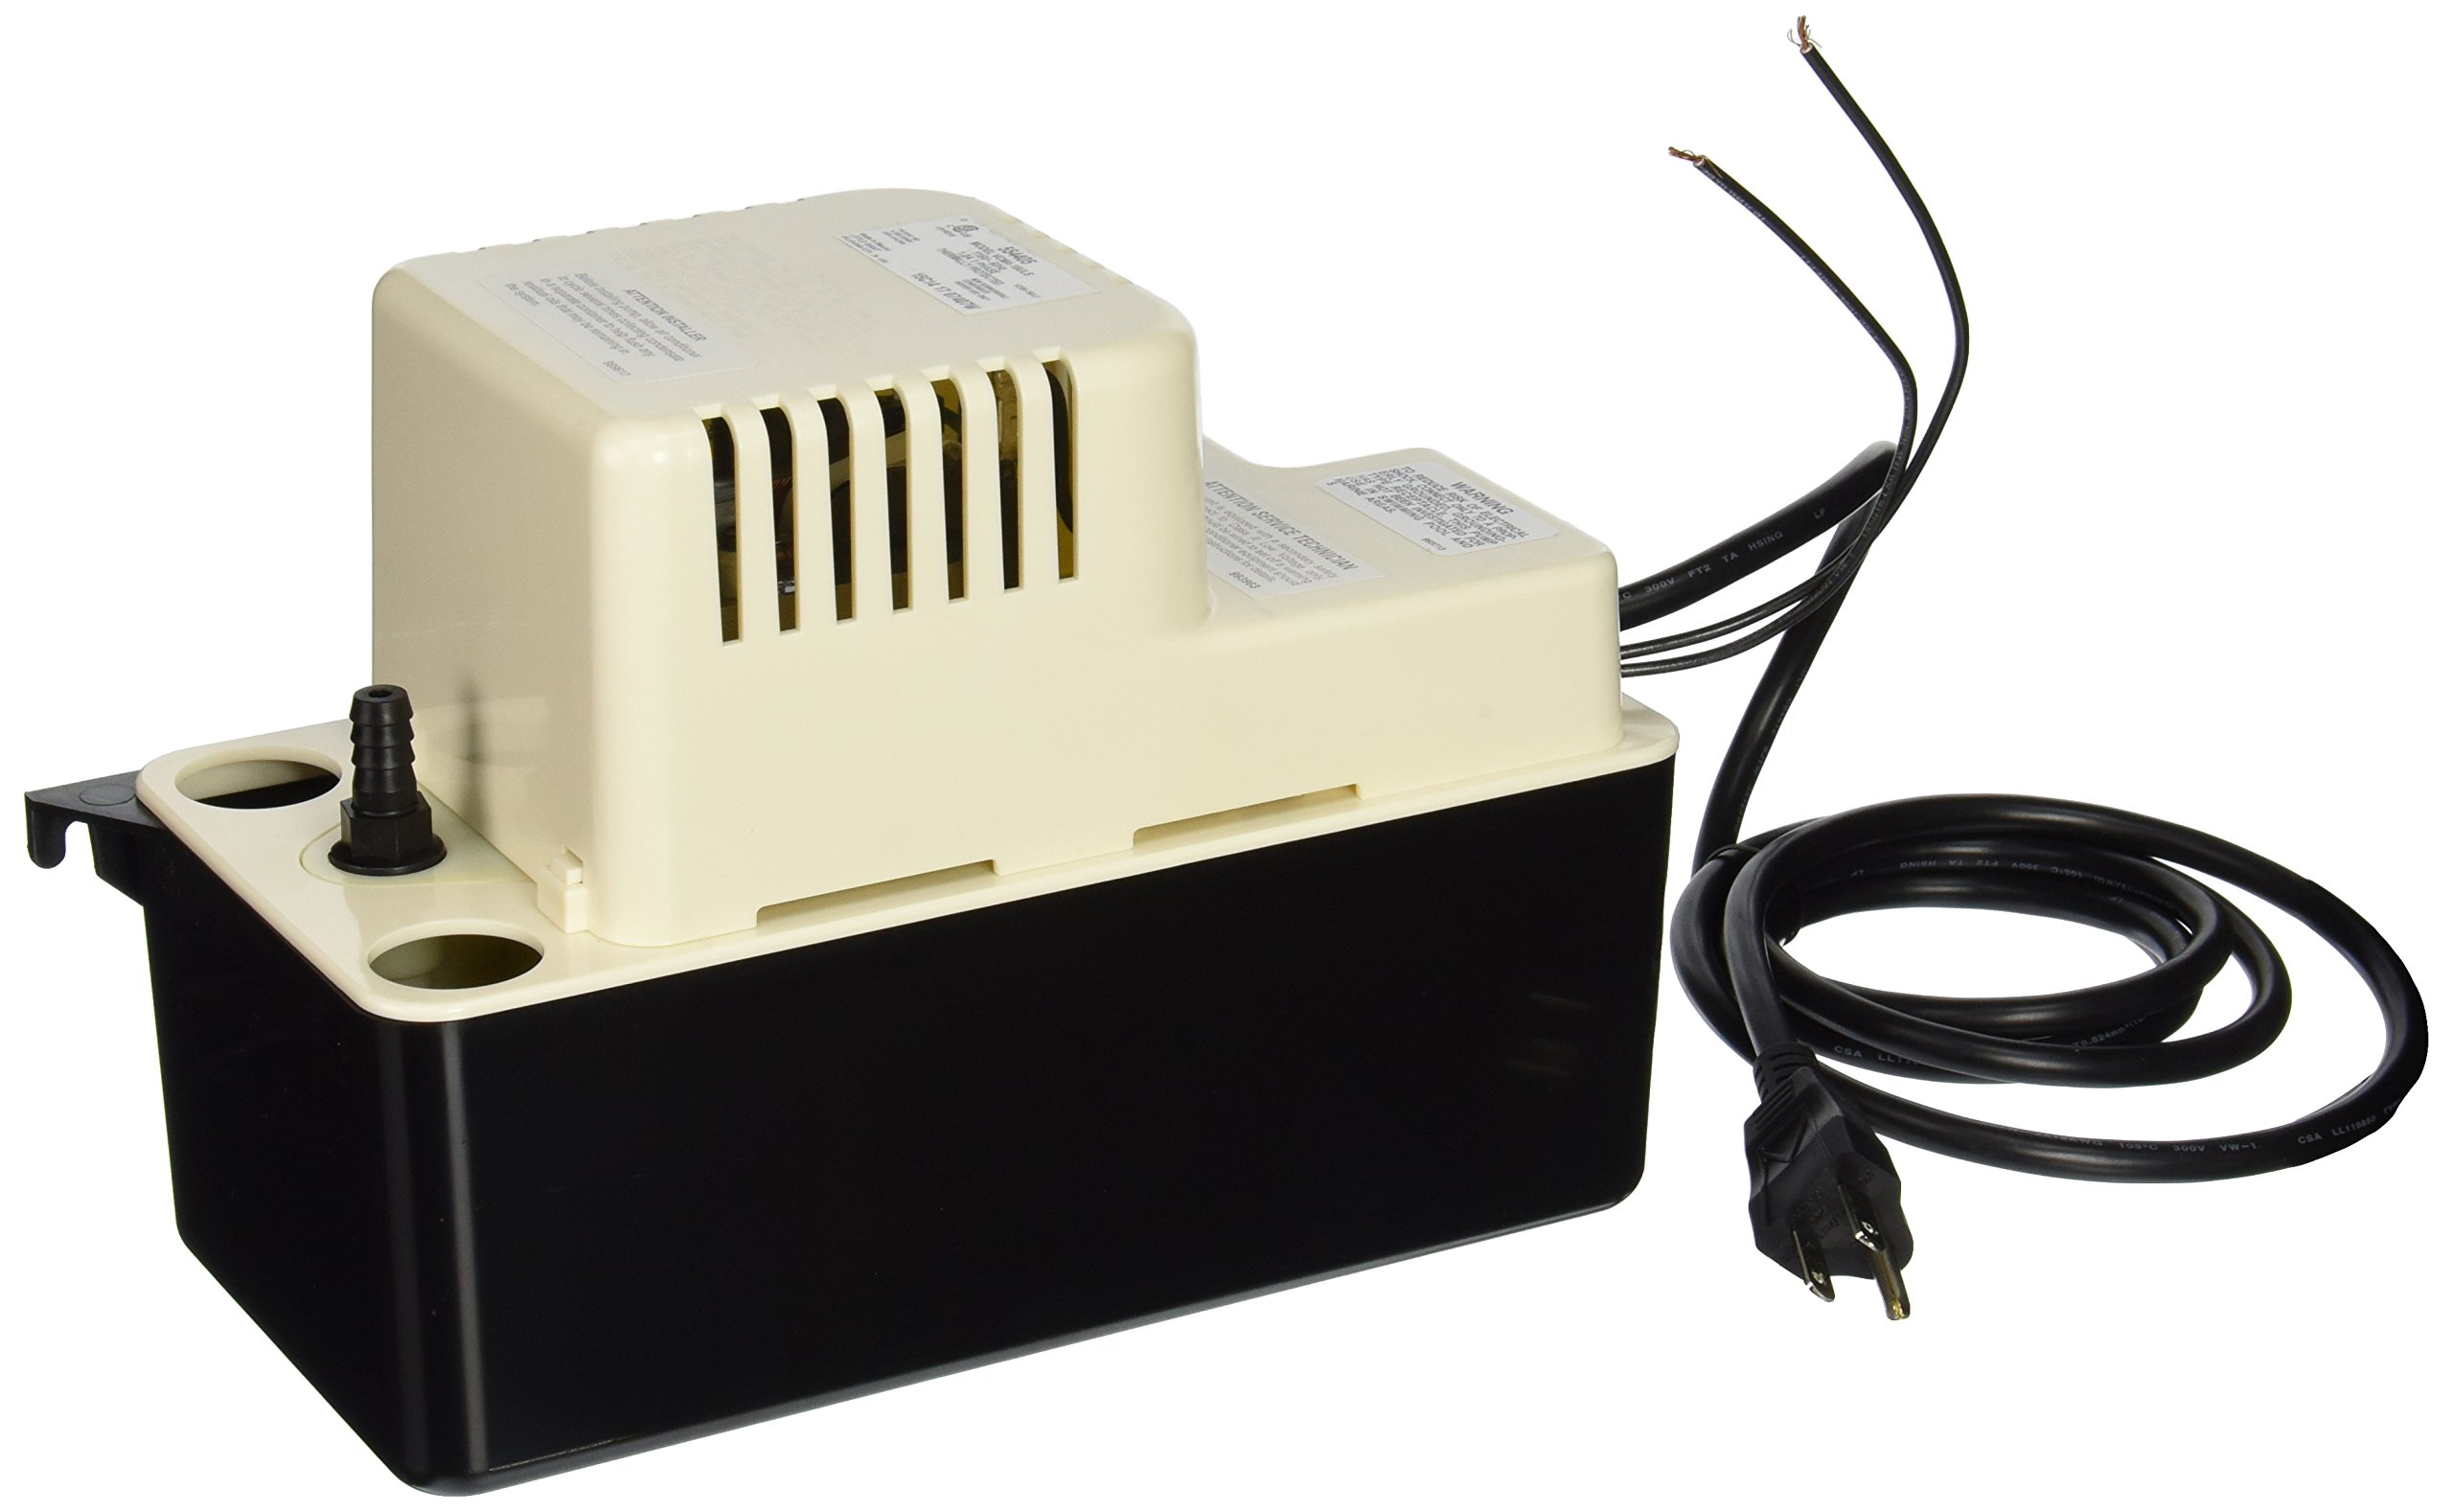 c2b54dcfe986 Little Giant GIDDS-521259 VCMA-15ULS VCMA Series Automatic Condensate  Removal Pump (115 volts)